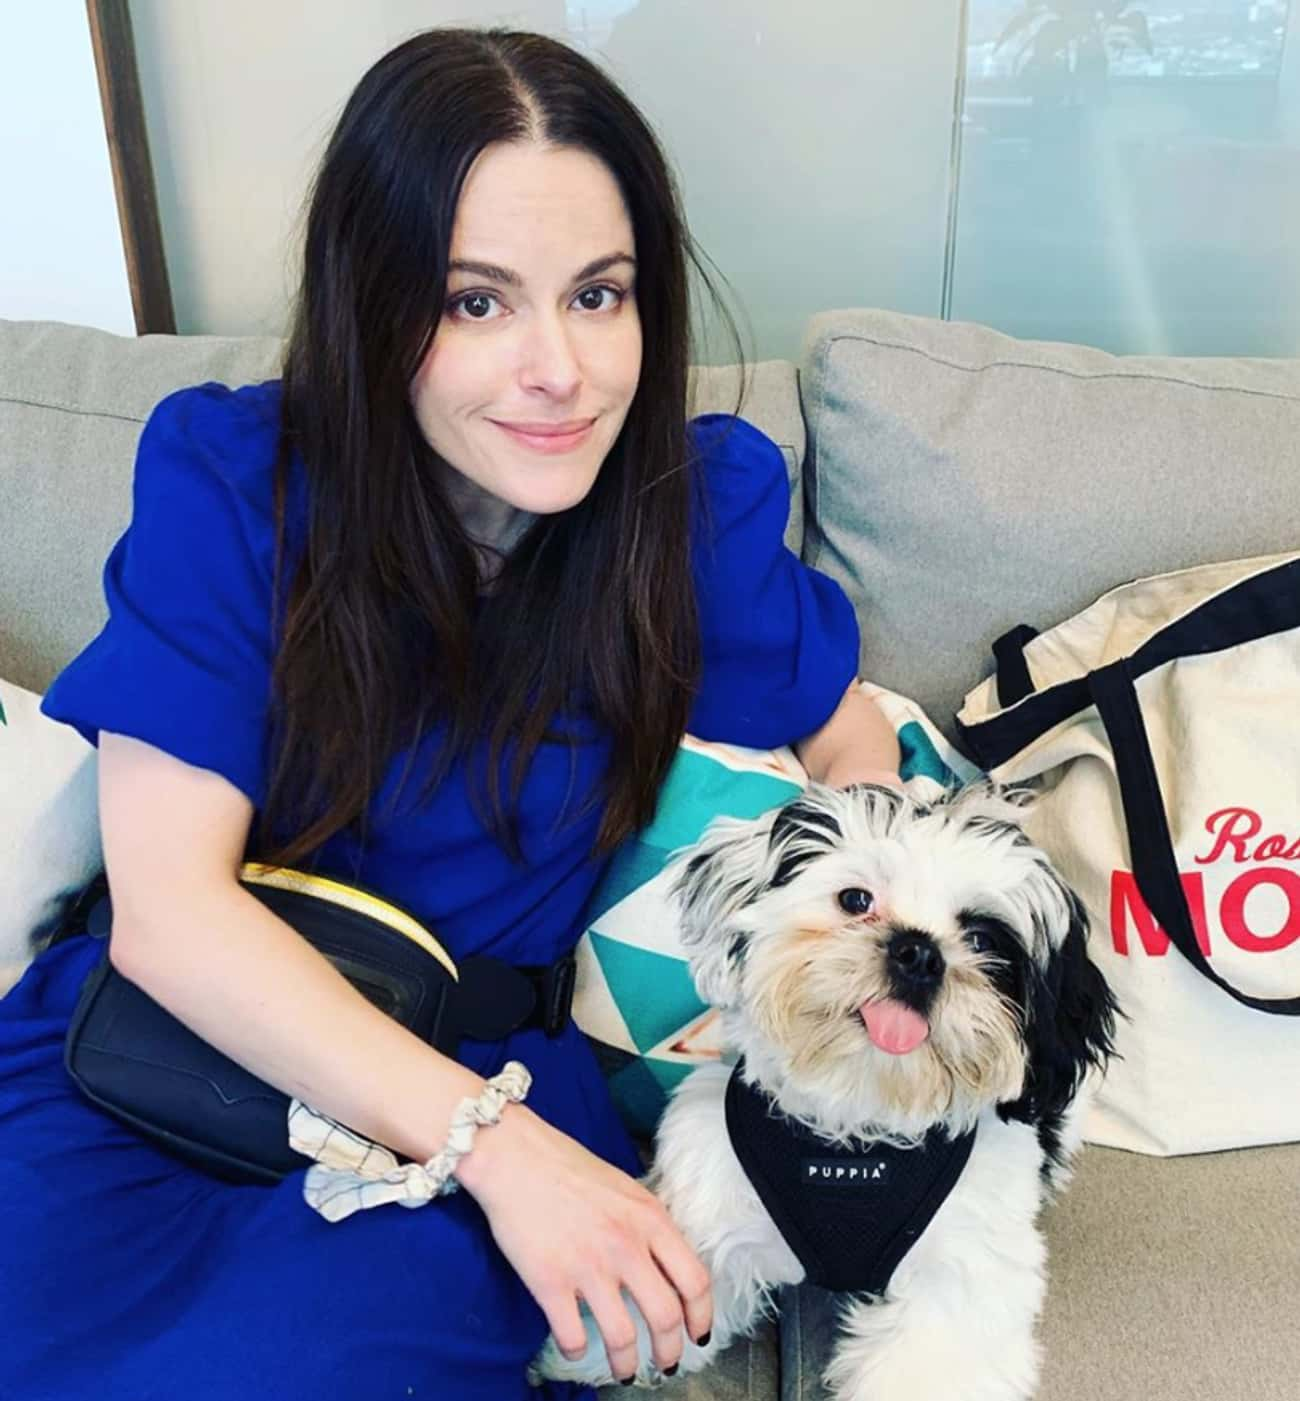 Read More About Emily Hampshir is listed (or ranked) 3 on the list Every Celebrity Emily Hampshire Has Dated